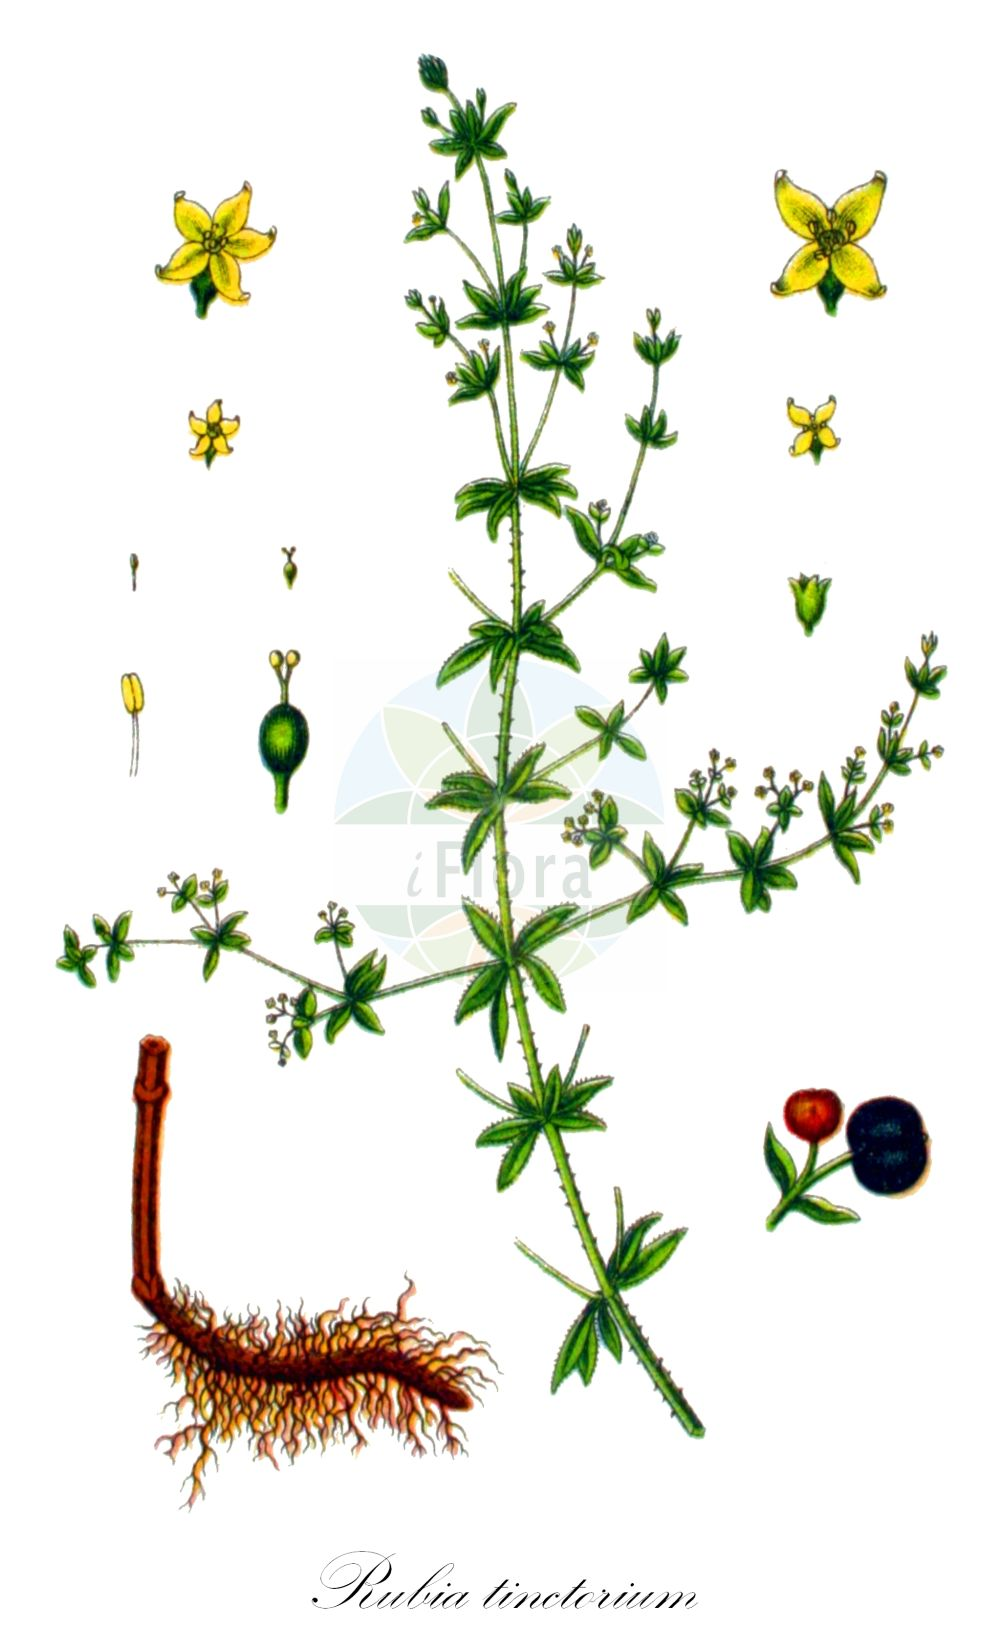 Historische Abbildung von Rubia tinctorium. Das Bild zeigt Blatt, Bluete, Frucht und Same. ---- Historical Drawing of Rubia tinctorium.The image is showing leaf, flower, fruit and seed.(Rubia tinctorium,Rubia iberica,var. iberica,Rubia,Faerberroete,Dyer's Madder,Rubiaceae,Roetegewaechse;Kaffeegewaechse;Krappgewaechse;Labkrautgewaechse,Bedstraw family,Blatt,Bluete,Frucht,Same,leaf,flower,fruit,seed,Sturm (1796f))